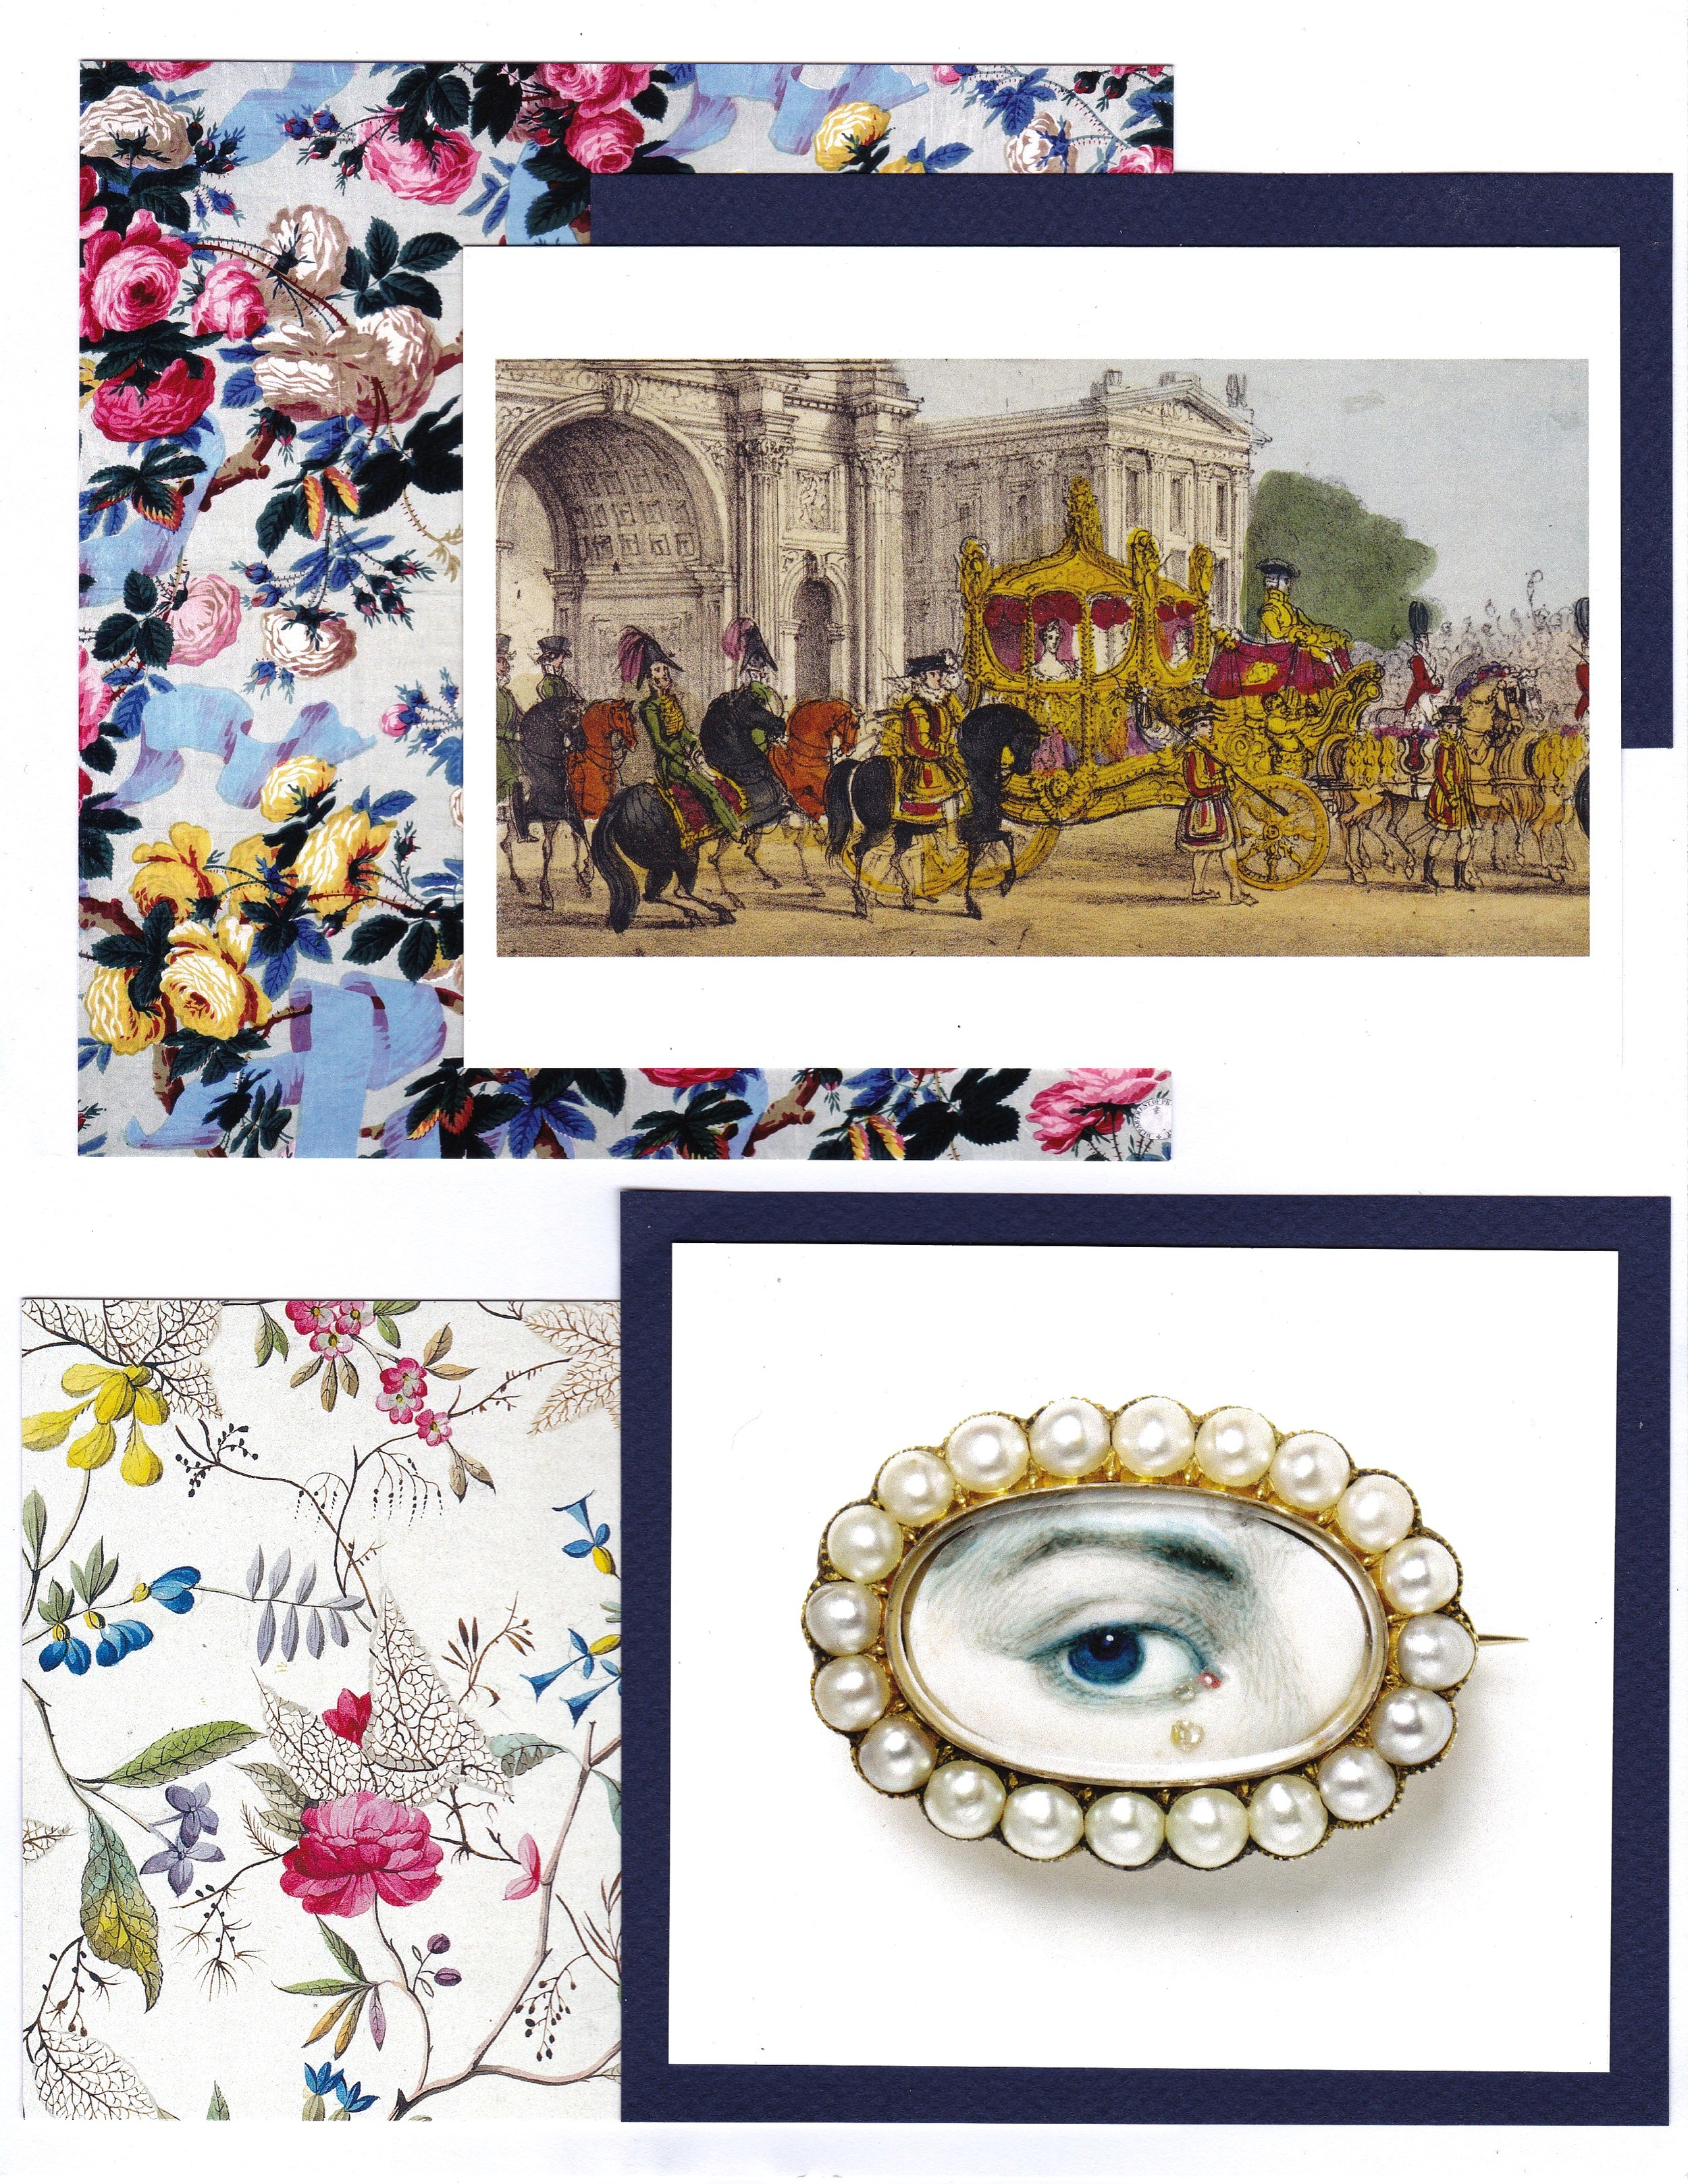 Early 1800s inspiration from the V&A. Top: The Queen in her State Carriage From 'Robin's Panoramic Representation of the Queen's Coronation Procession from the Palace to the Abbey, on 28th June 1838' by Joseph Robins. London, 1838. Bottom: Eye Miniature, Watercolor and diamonds on ivory. Britain, 1790-1810. Background: Printed Textiles, Early 1800s.